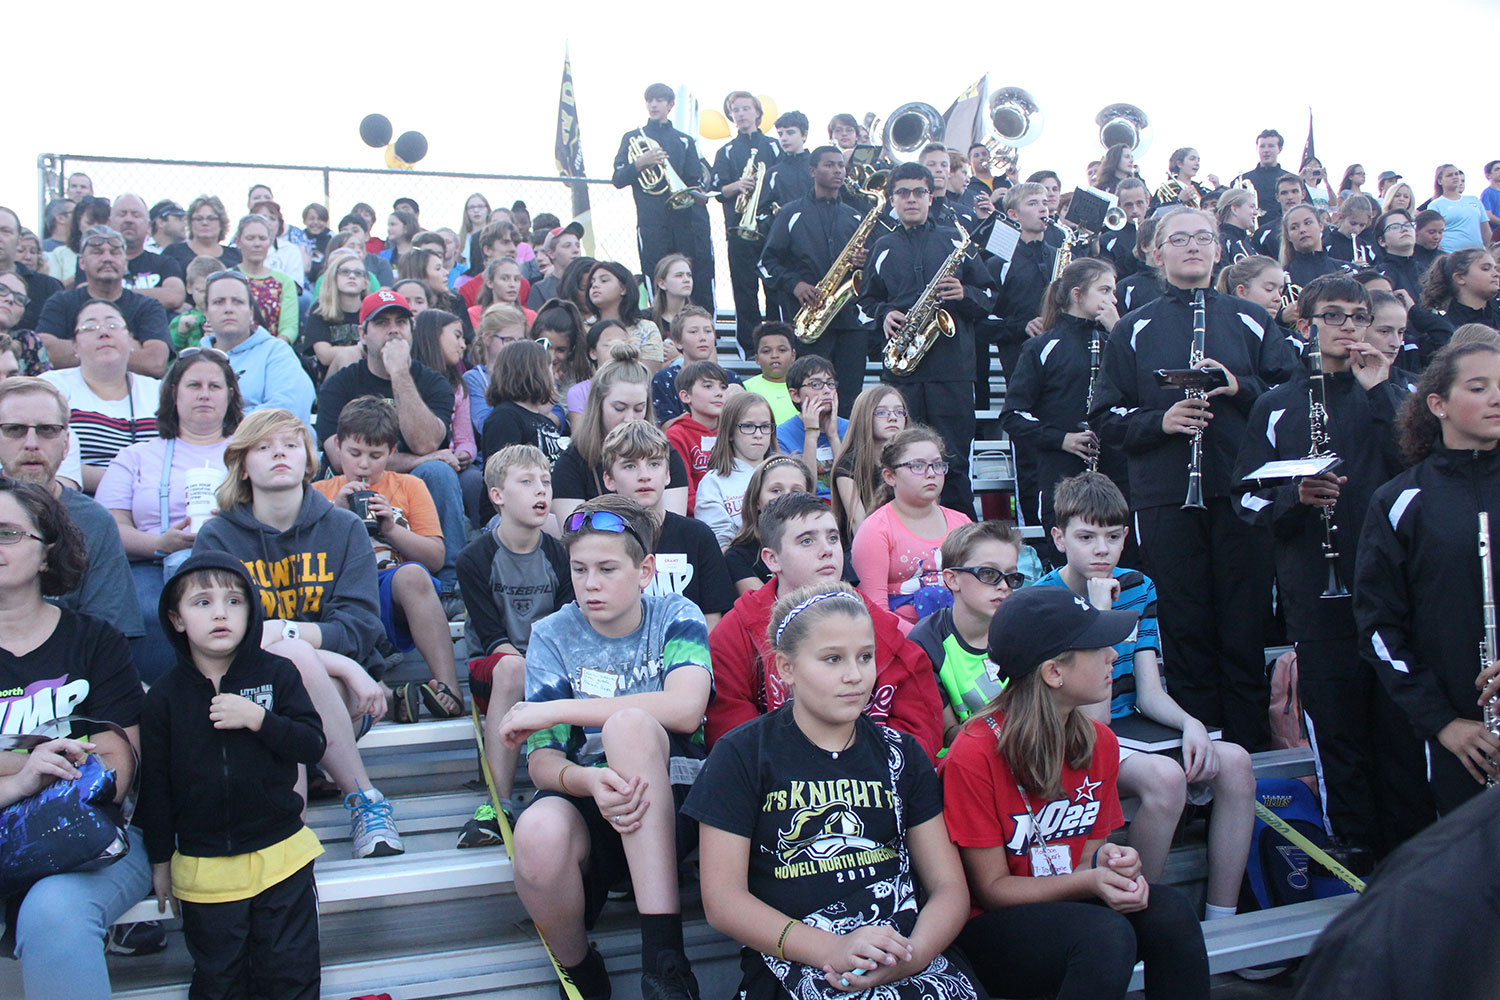 Middle+school+students+from+Barnwell+and+Hollenbeck+Middle+School+joined+FHN%27s+Marching+Band+at+the+football+game+against+FZW+on+Sept.+8.